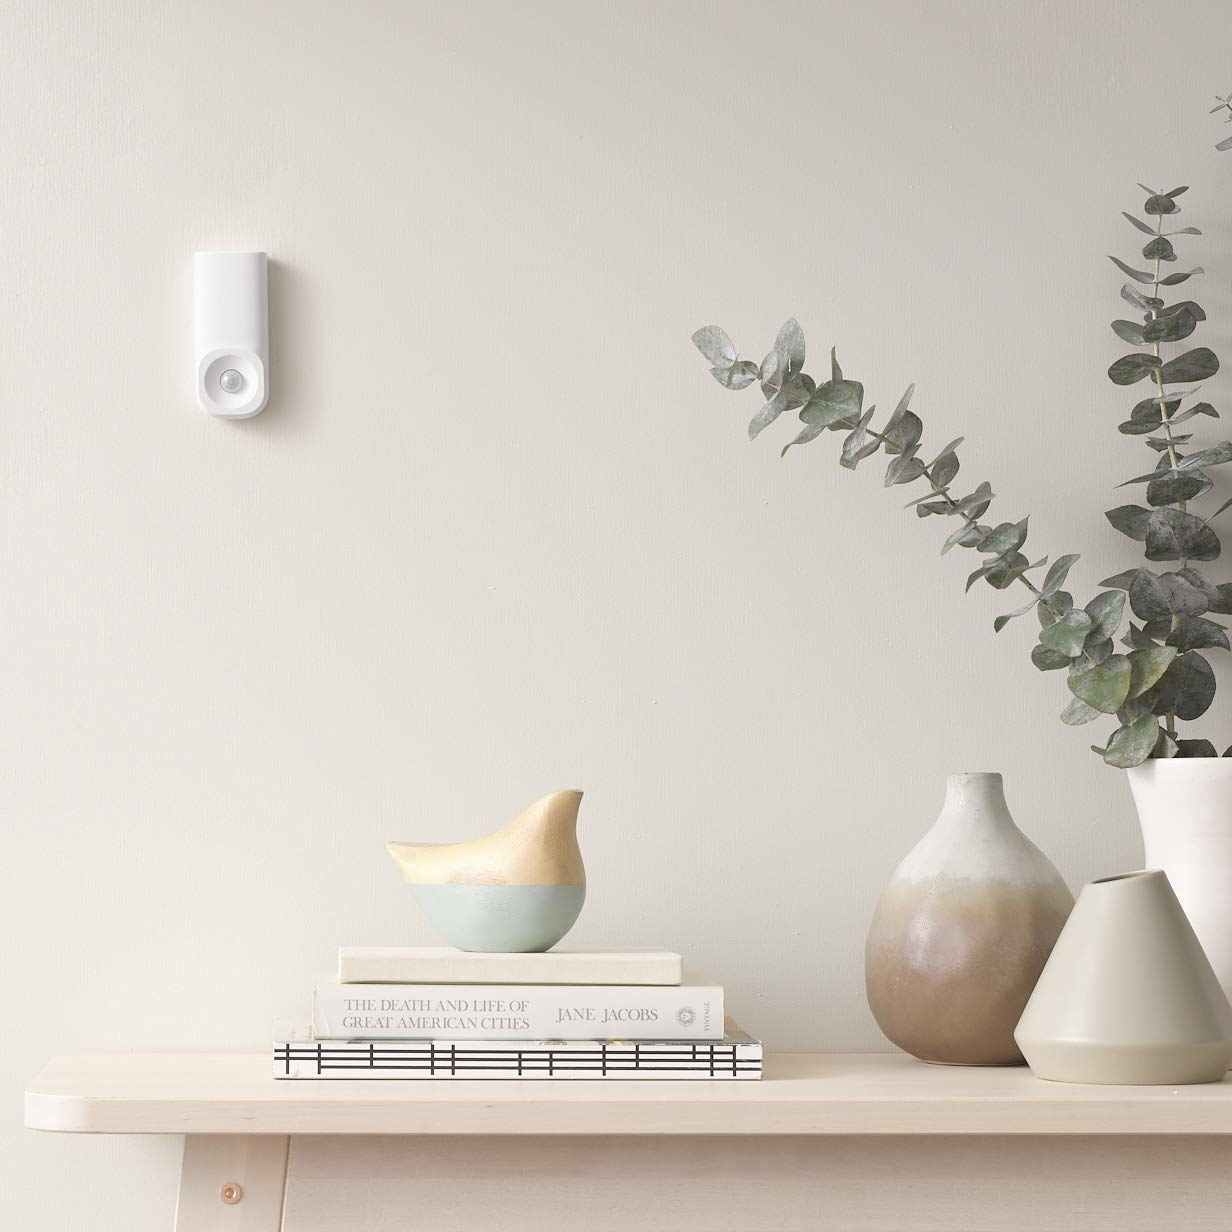 Motion sensor attached to a wall.